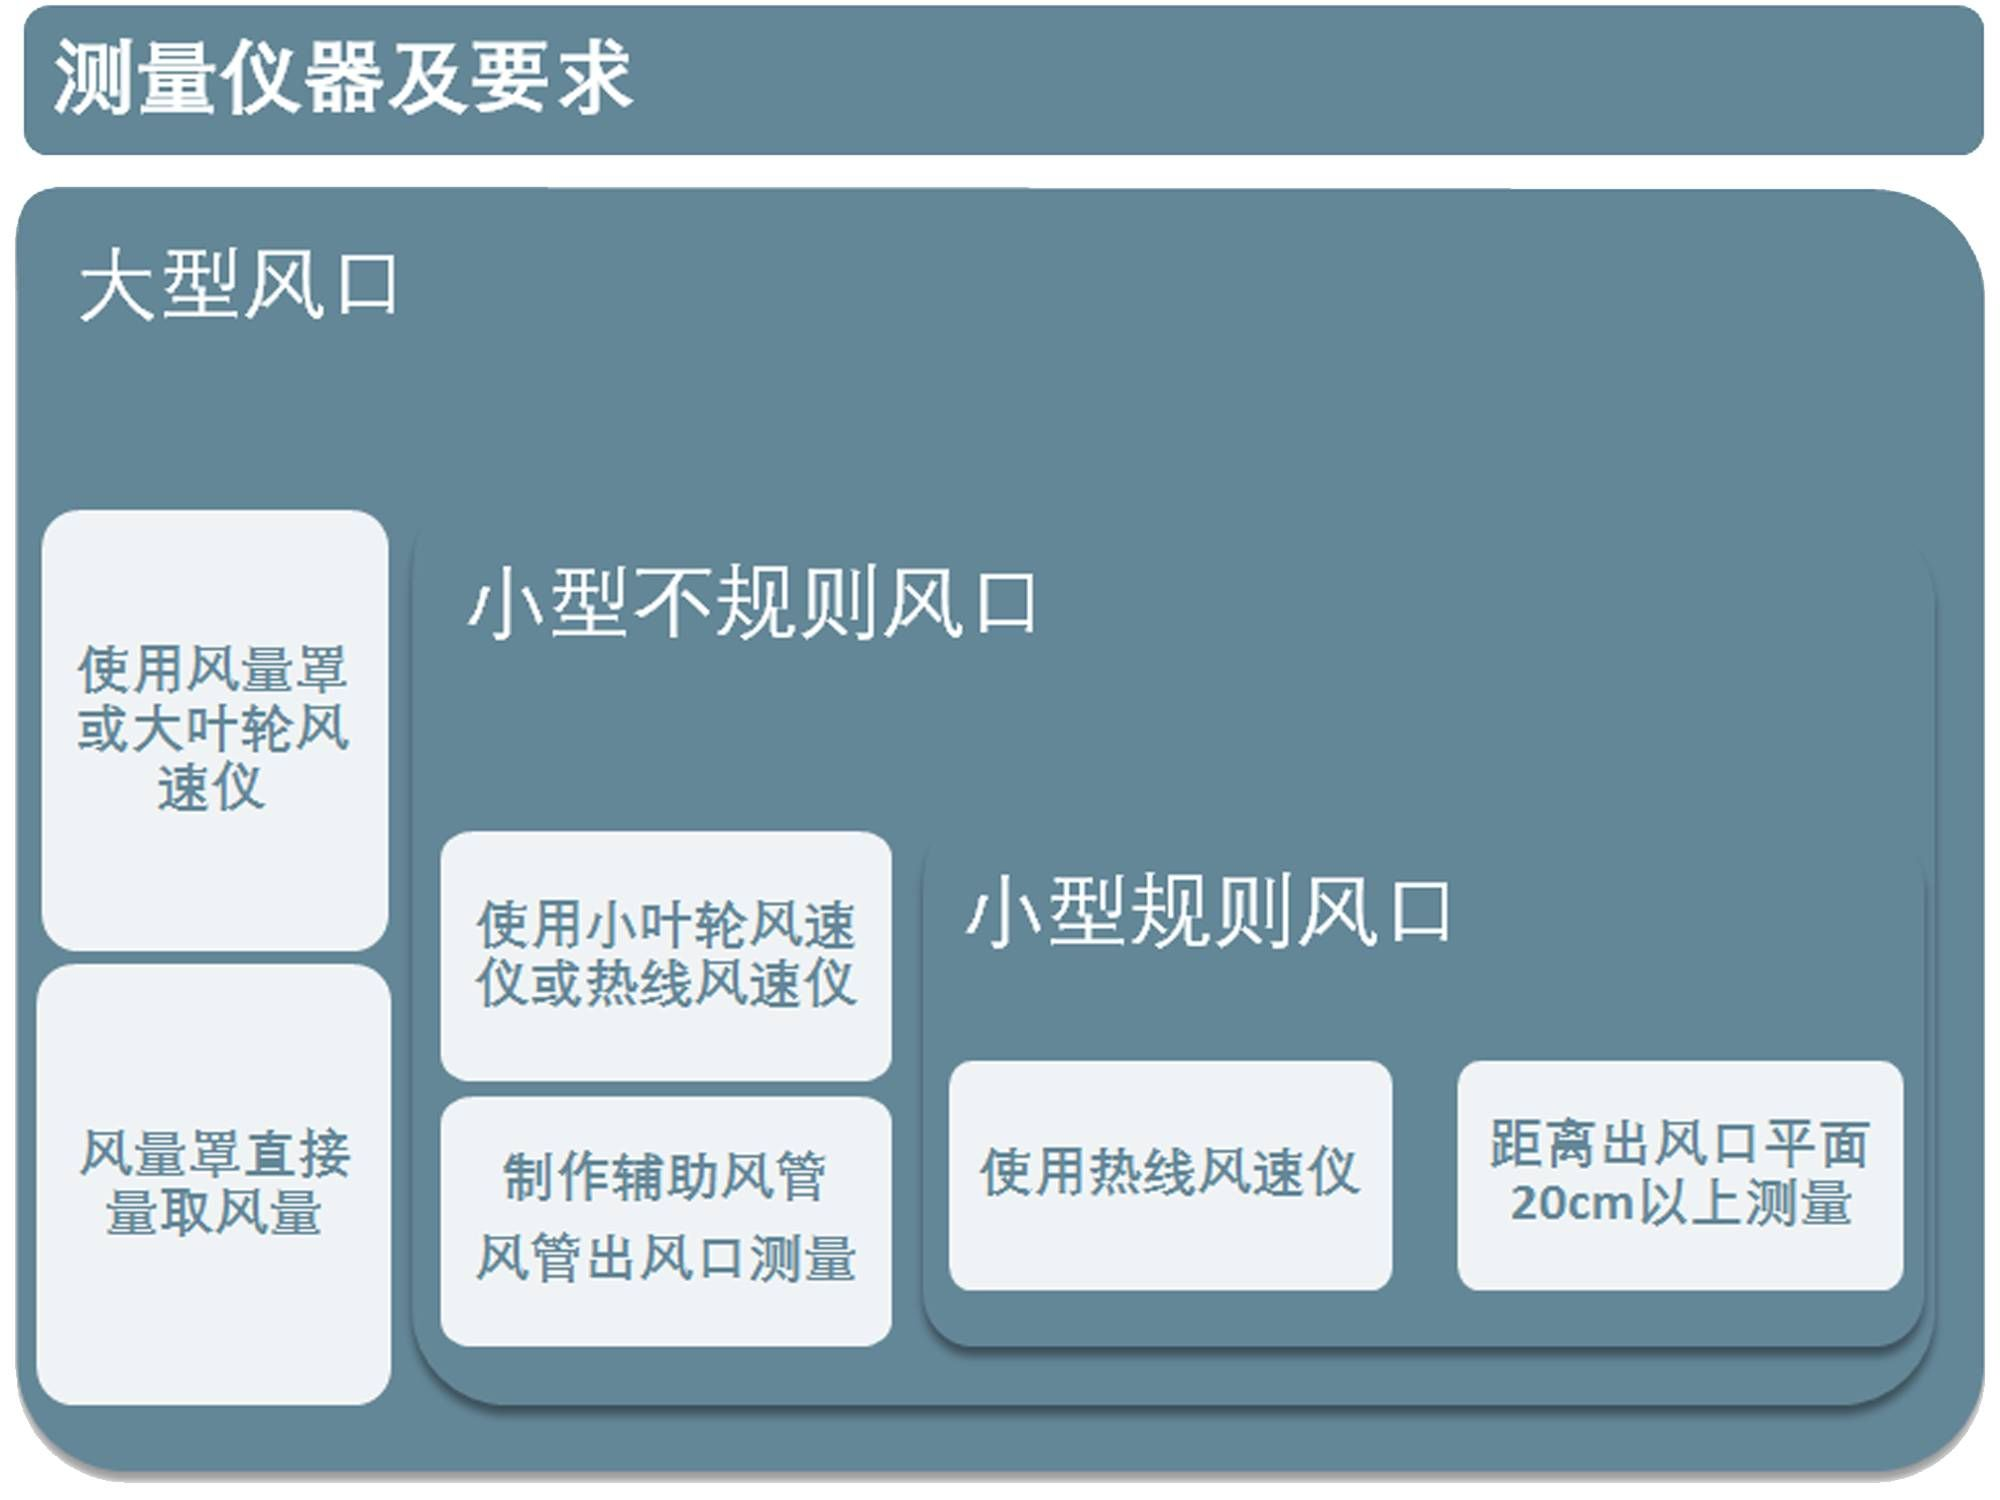 cn-20170928-applications-hvacr-indoor-air-quality05.png